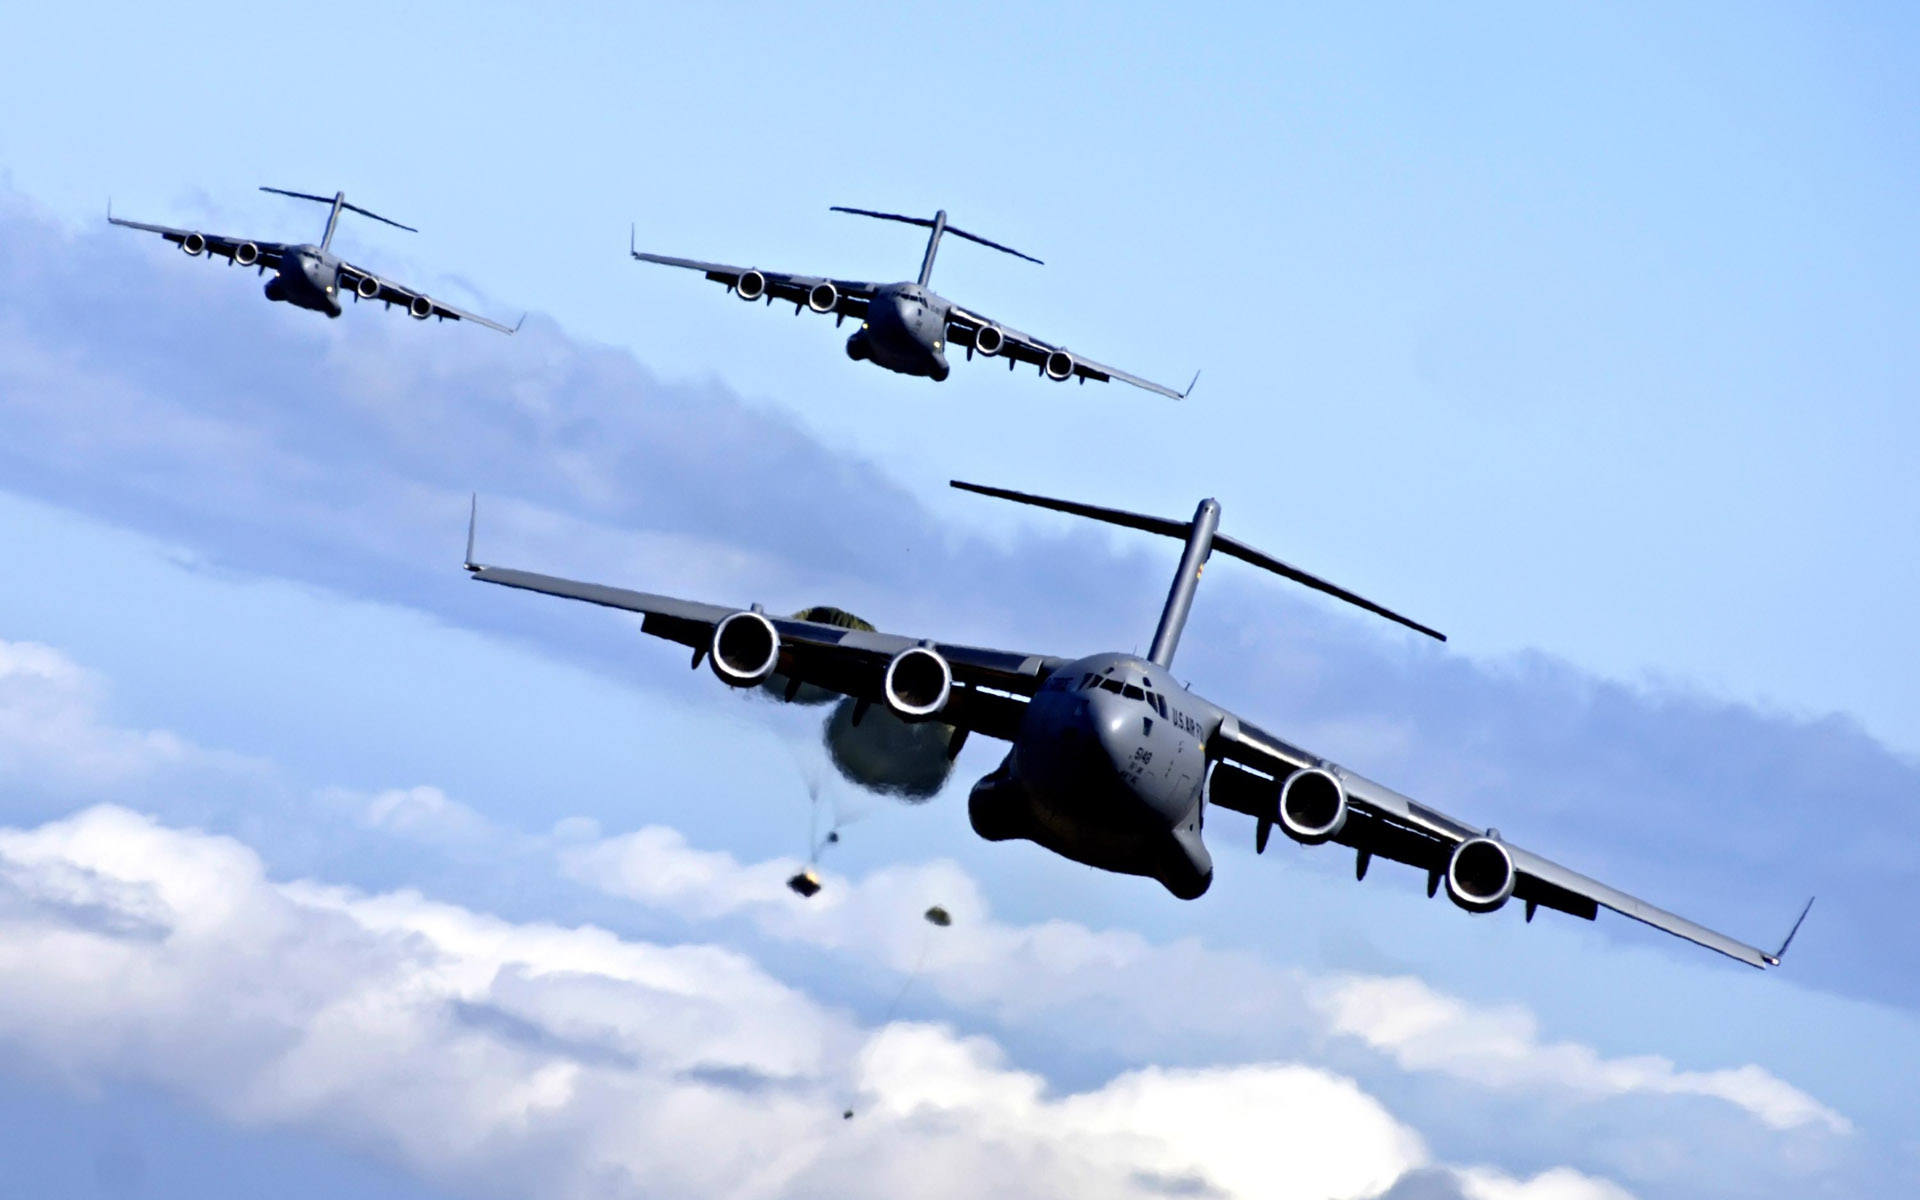 C-17 airdrop training mission